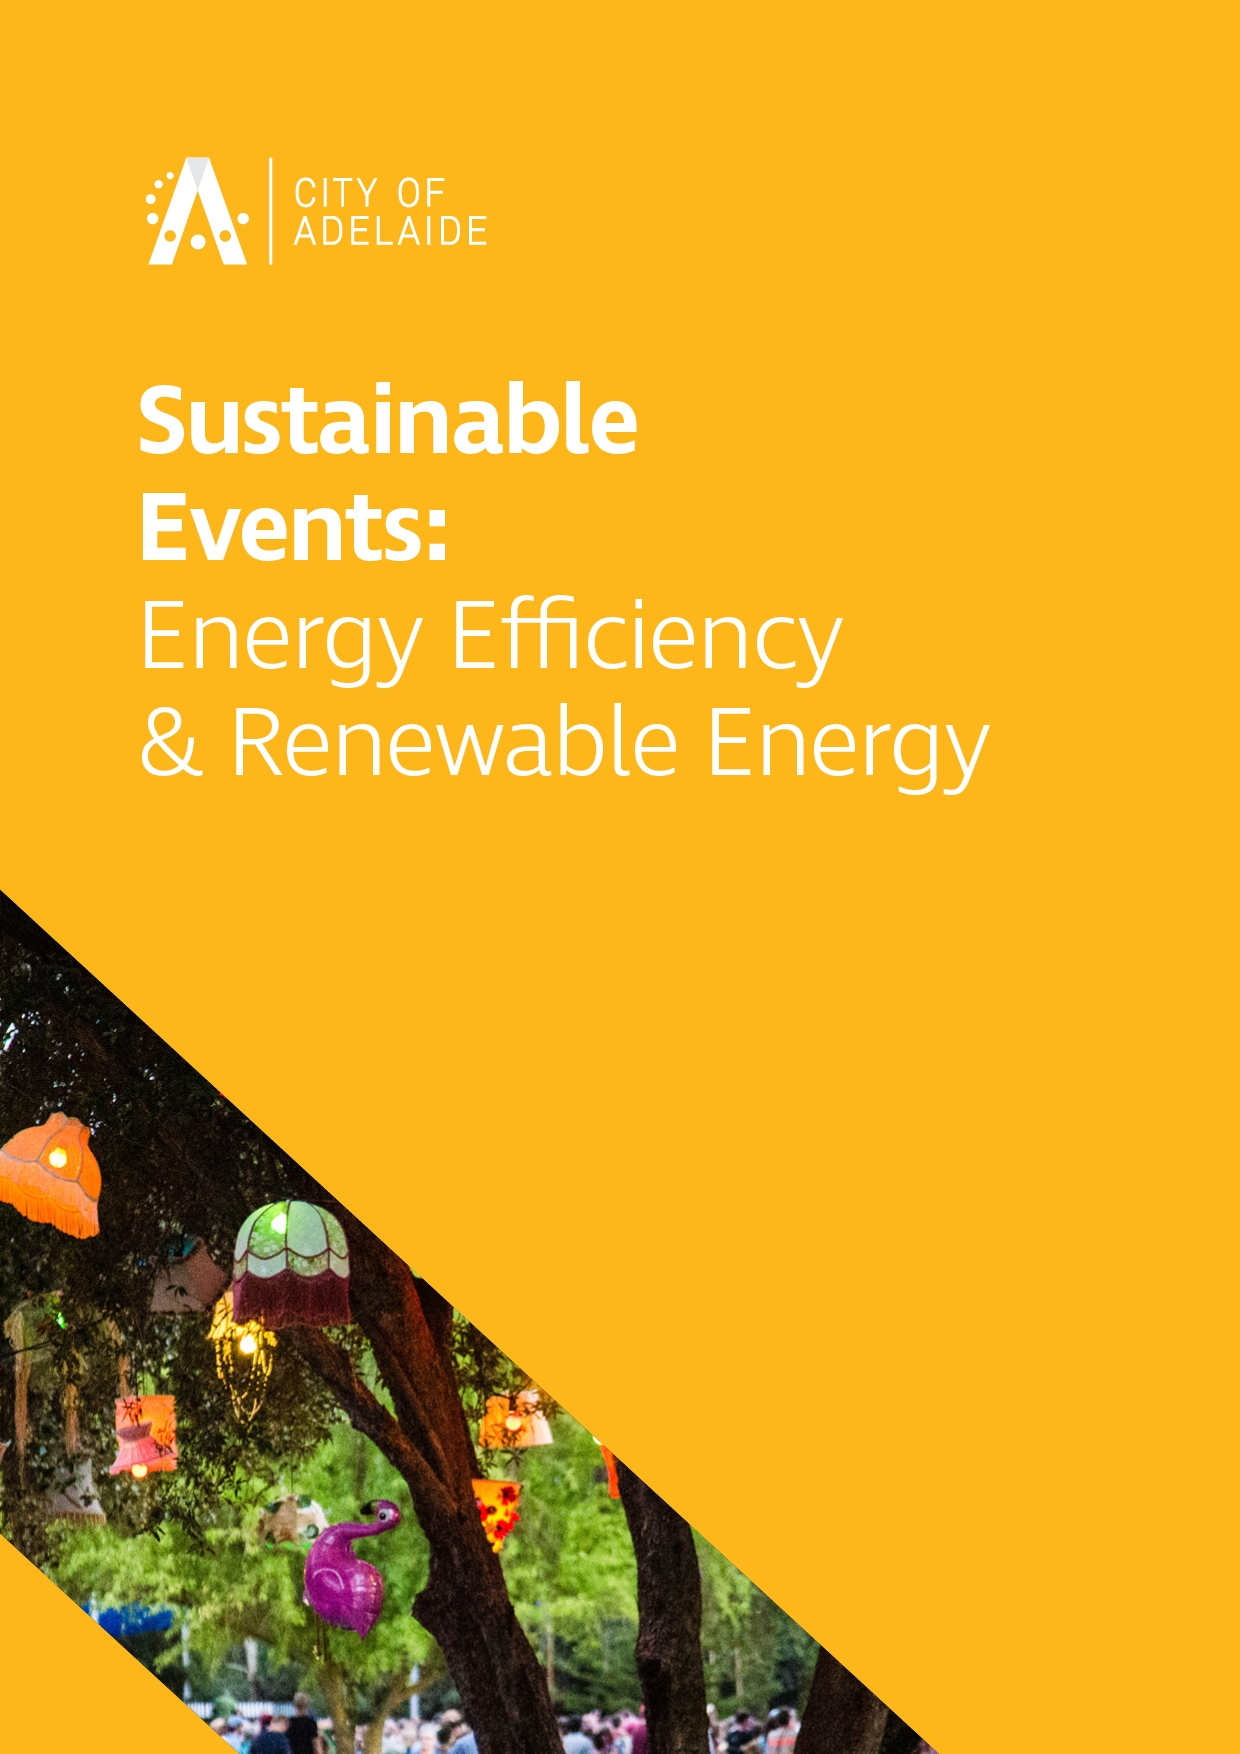 Thumbnail sustainable events checklists energy efficiency renewable energy